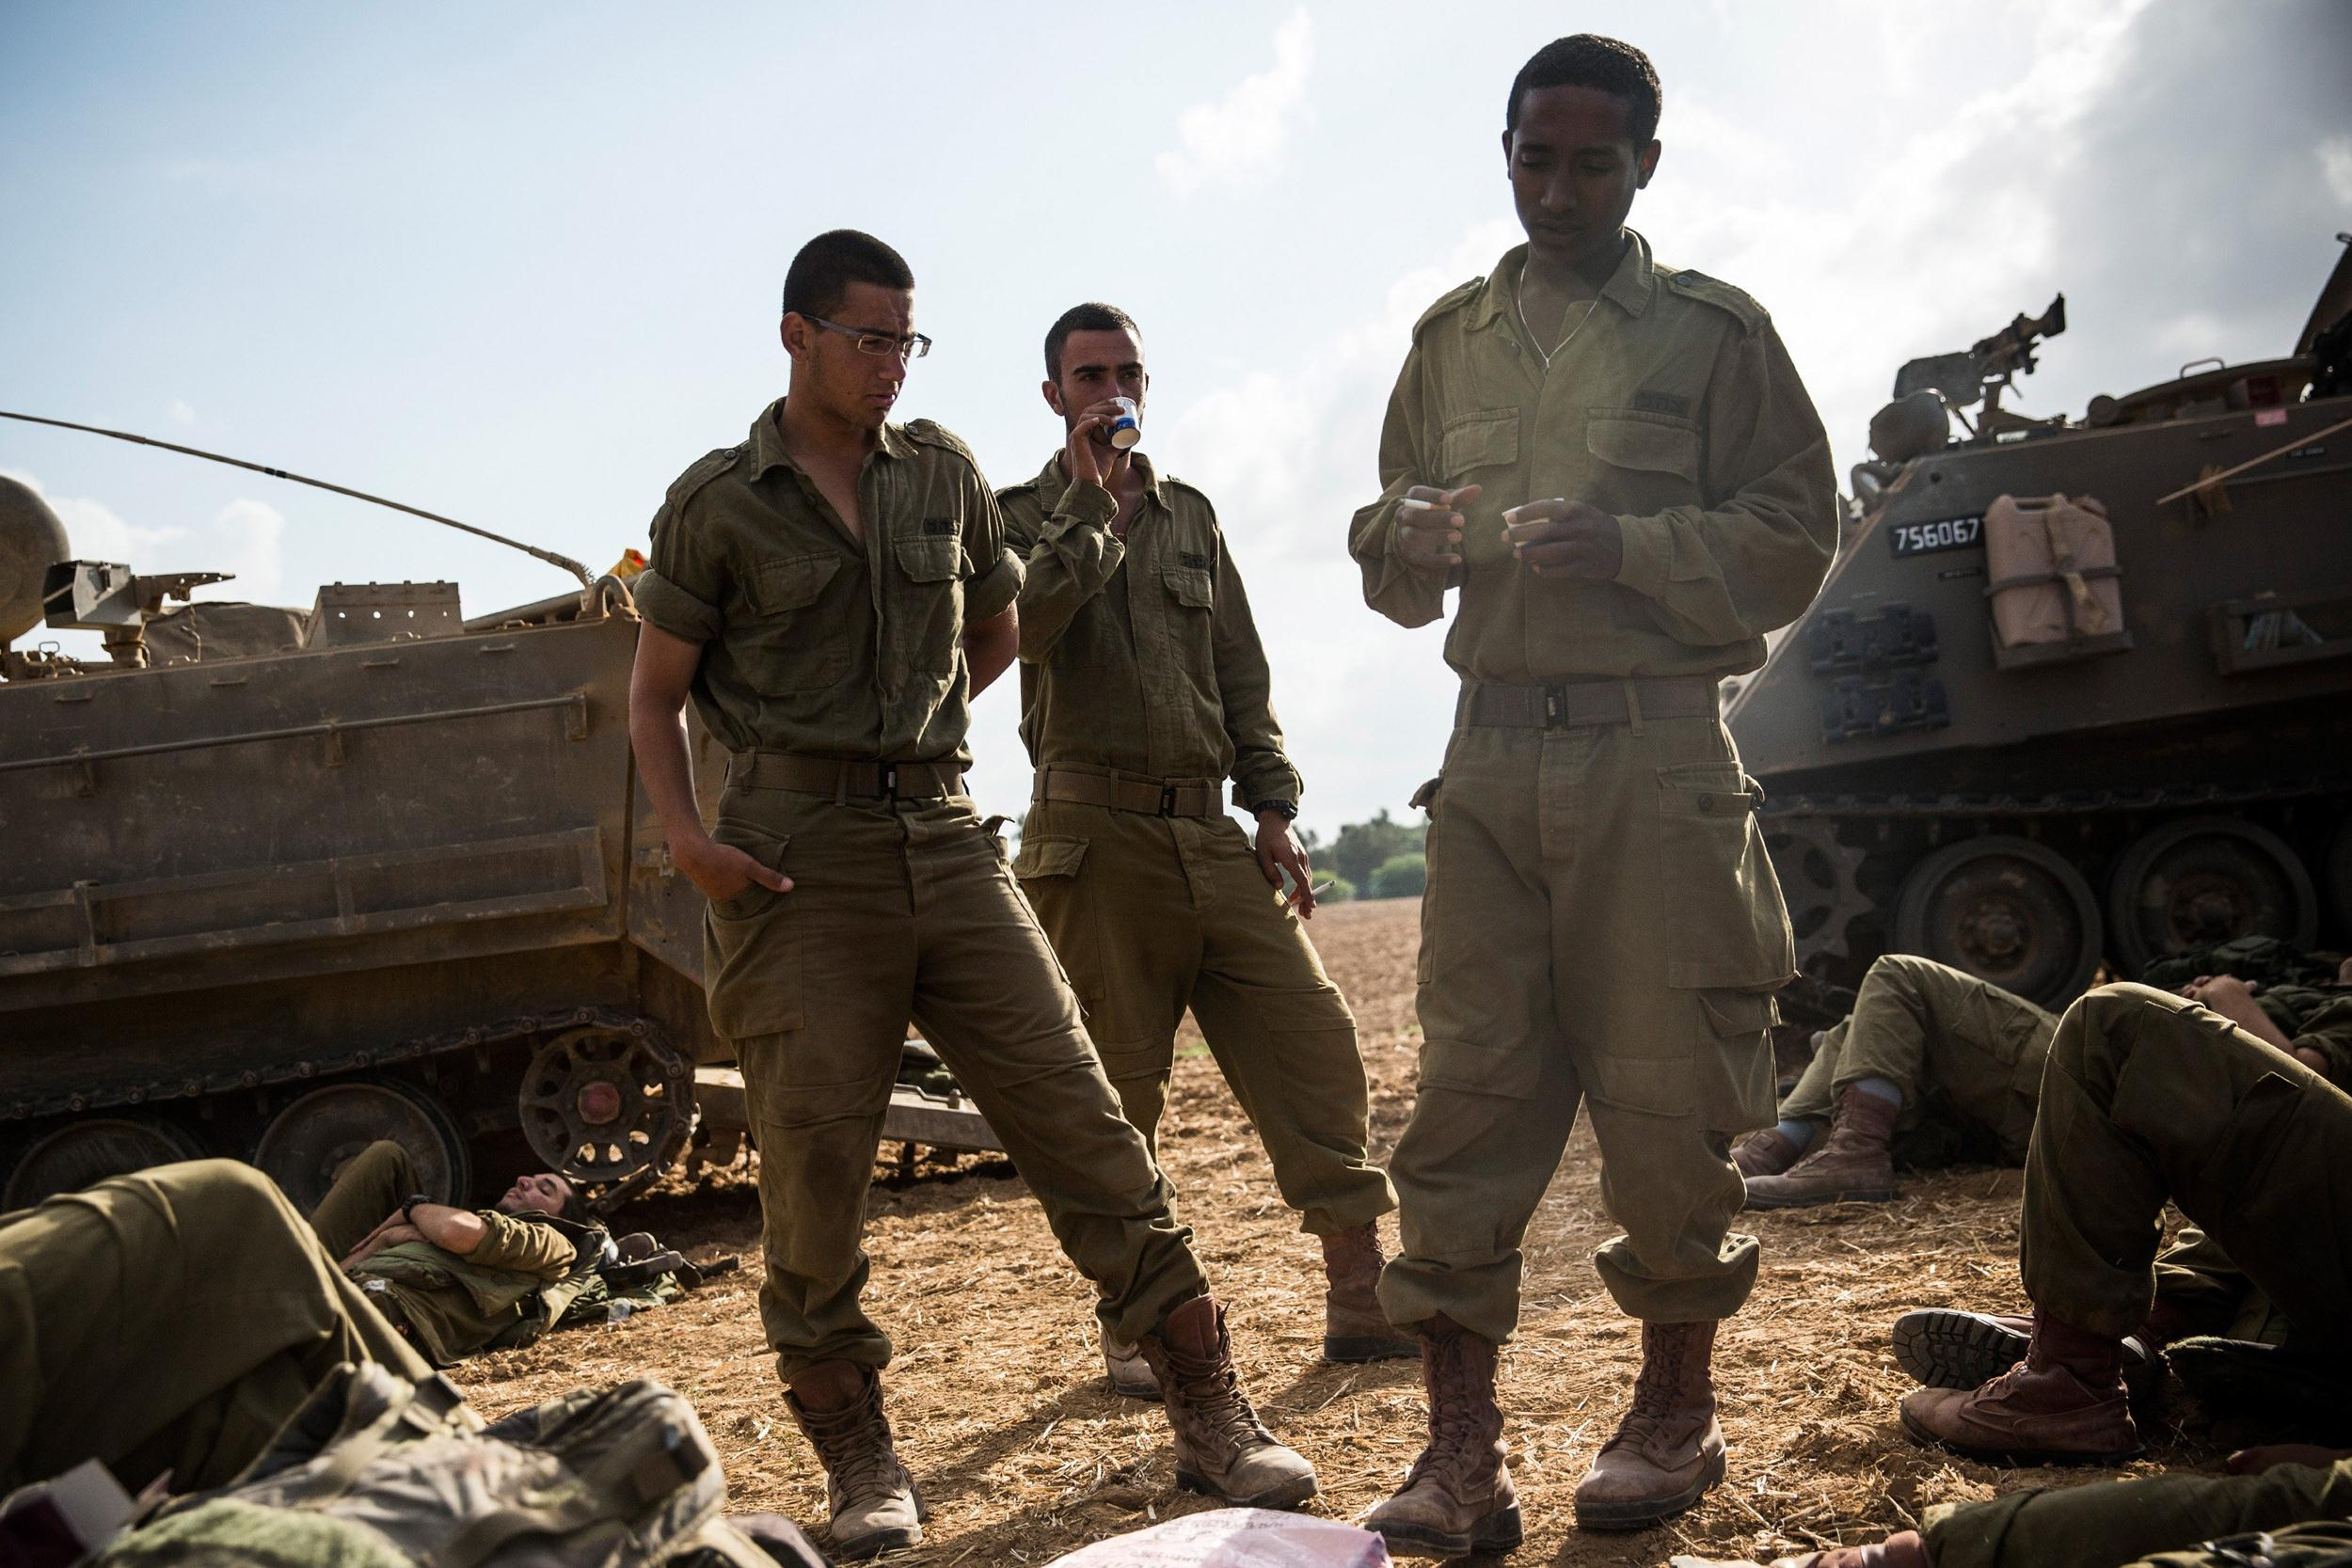 Image: Israeli soldiers wake up after sleeping next to armored personnel carriers near the Israeli-Gaza border